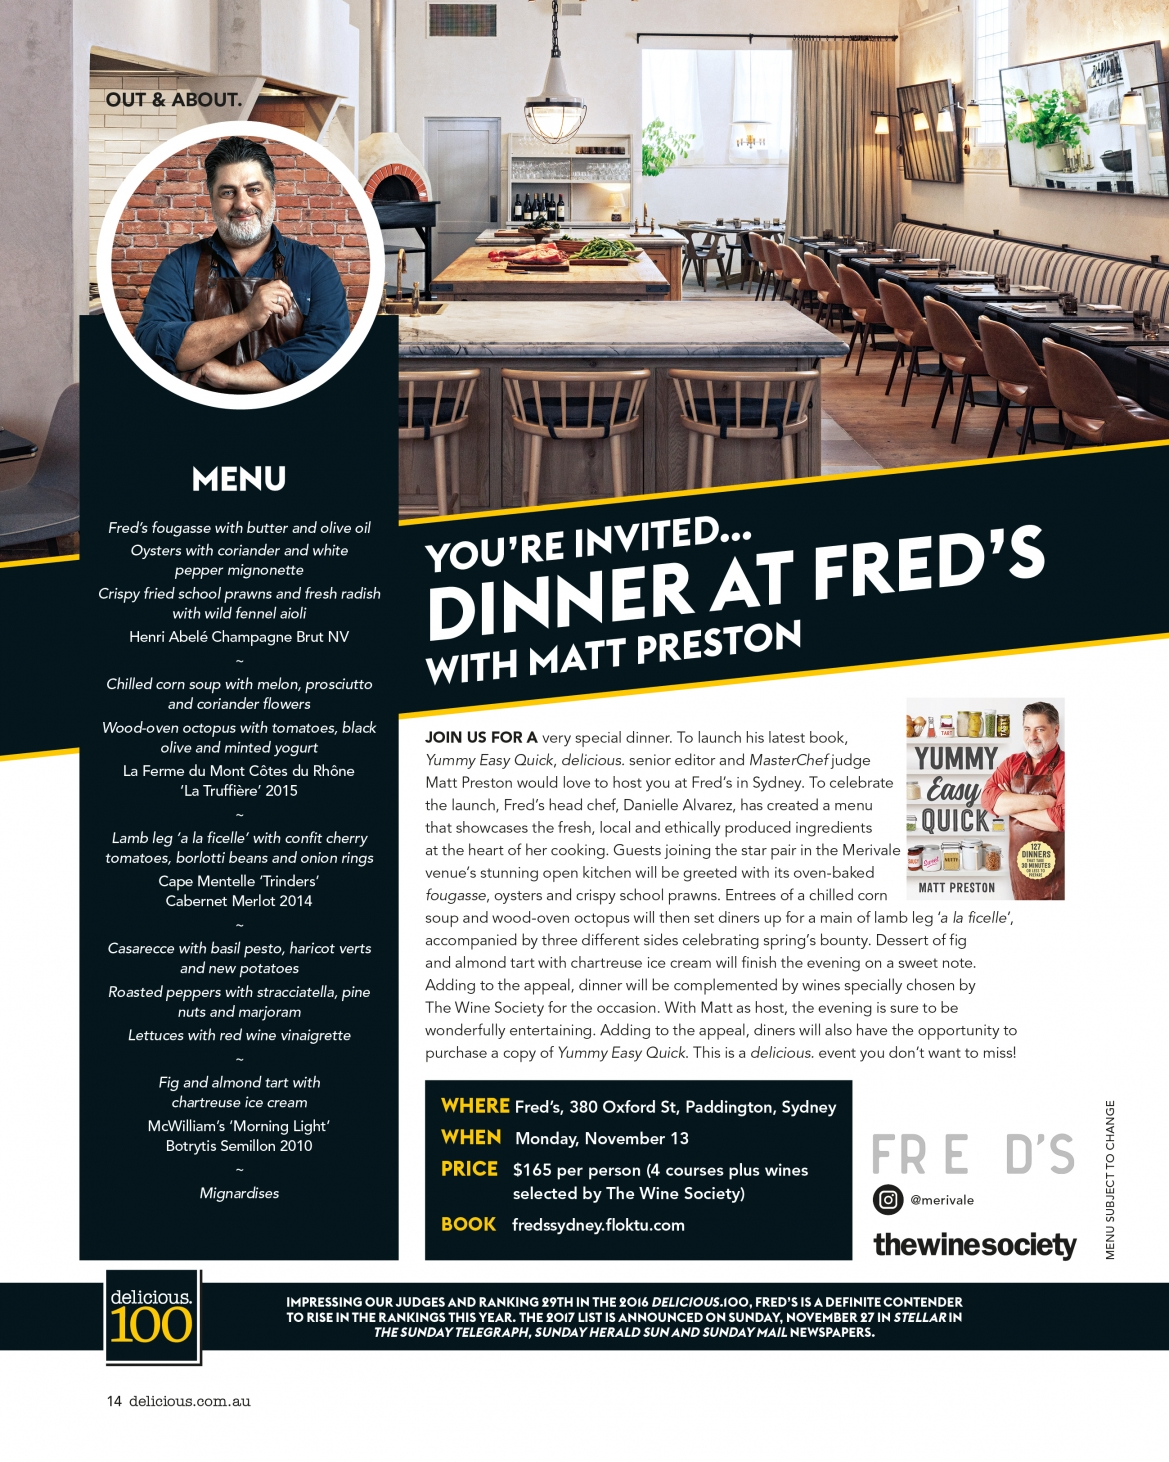 Fred's Sydney